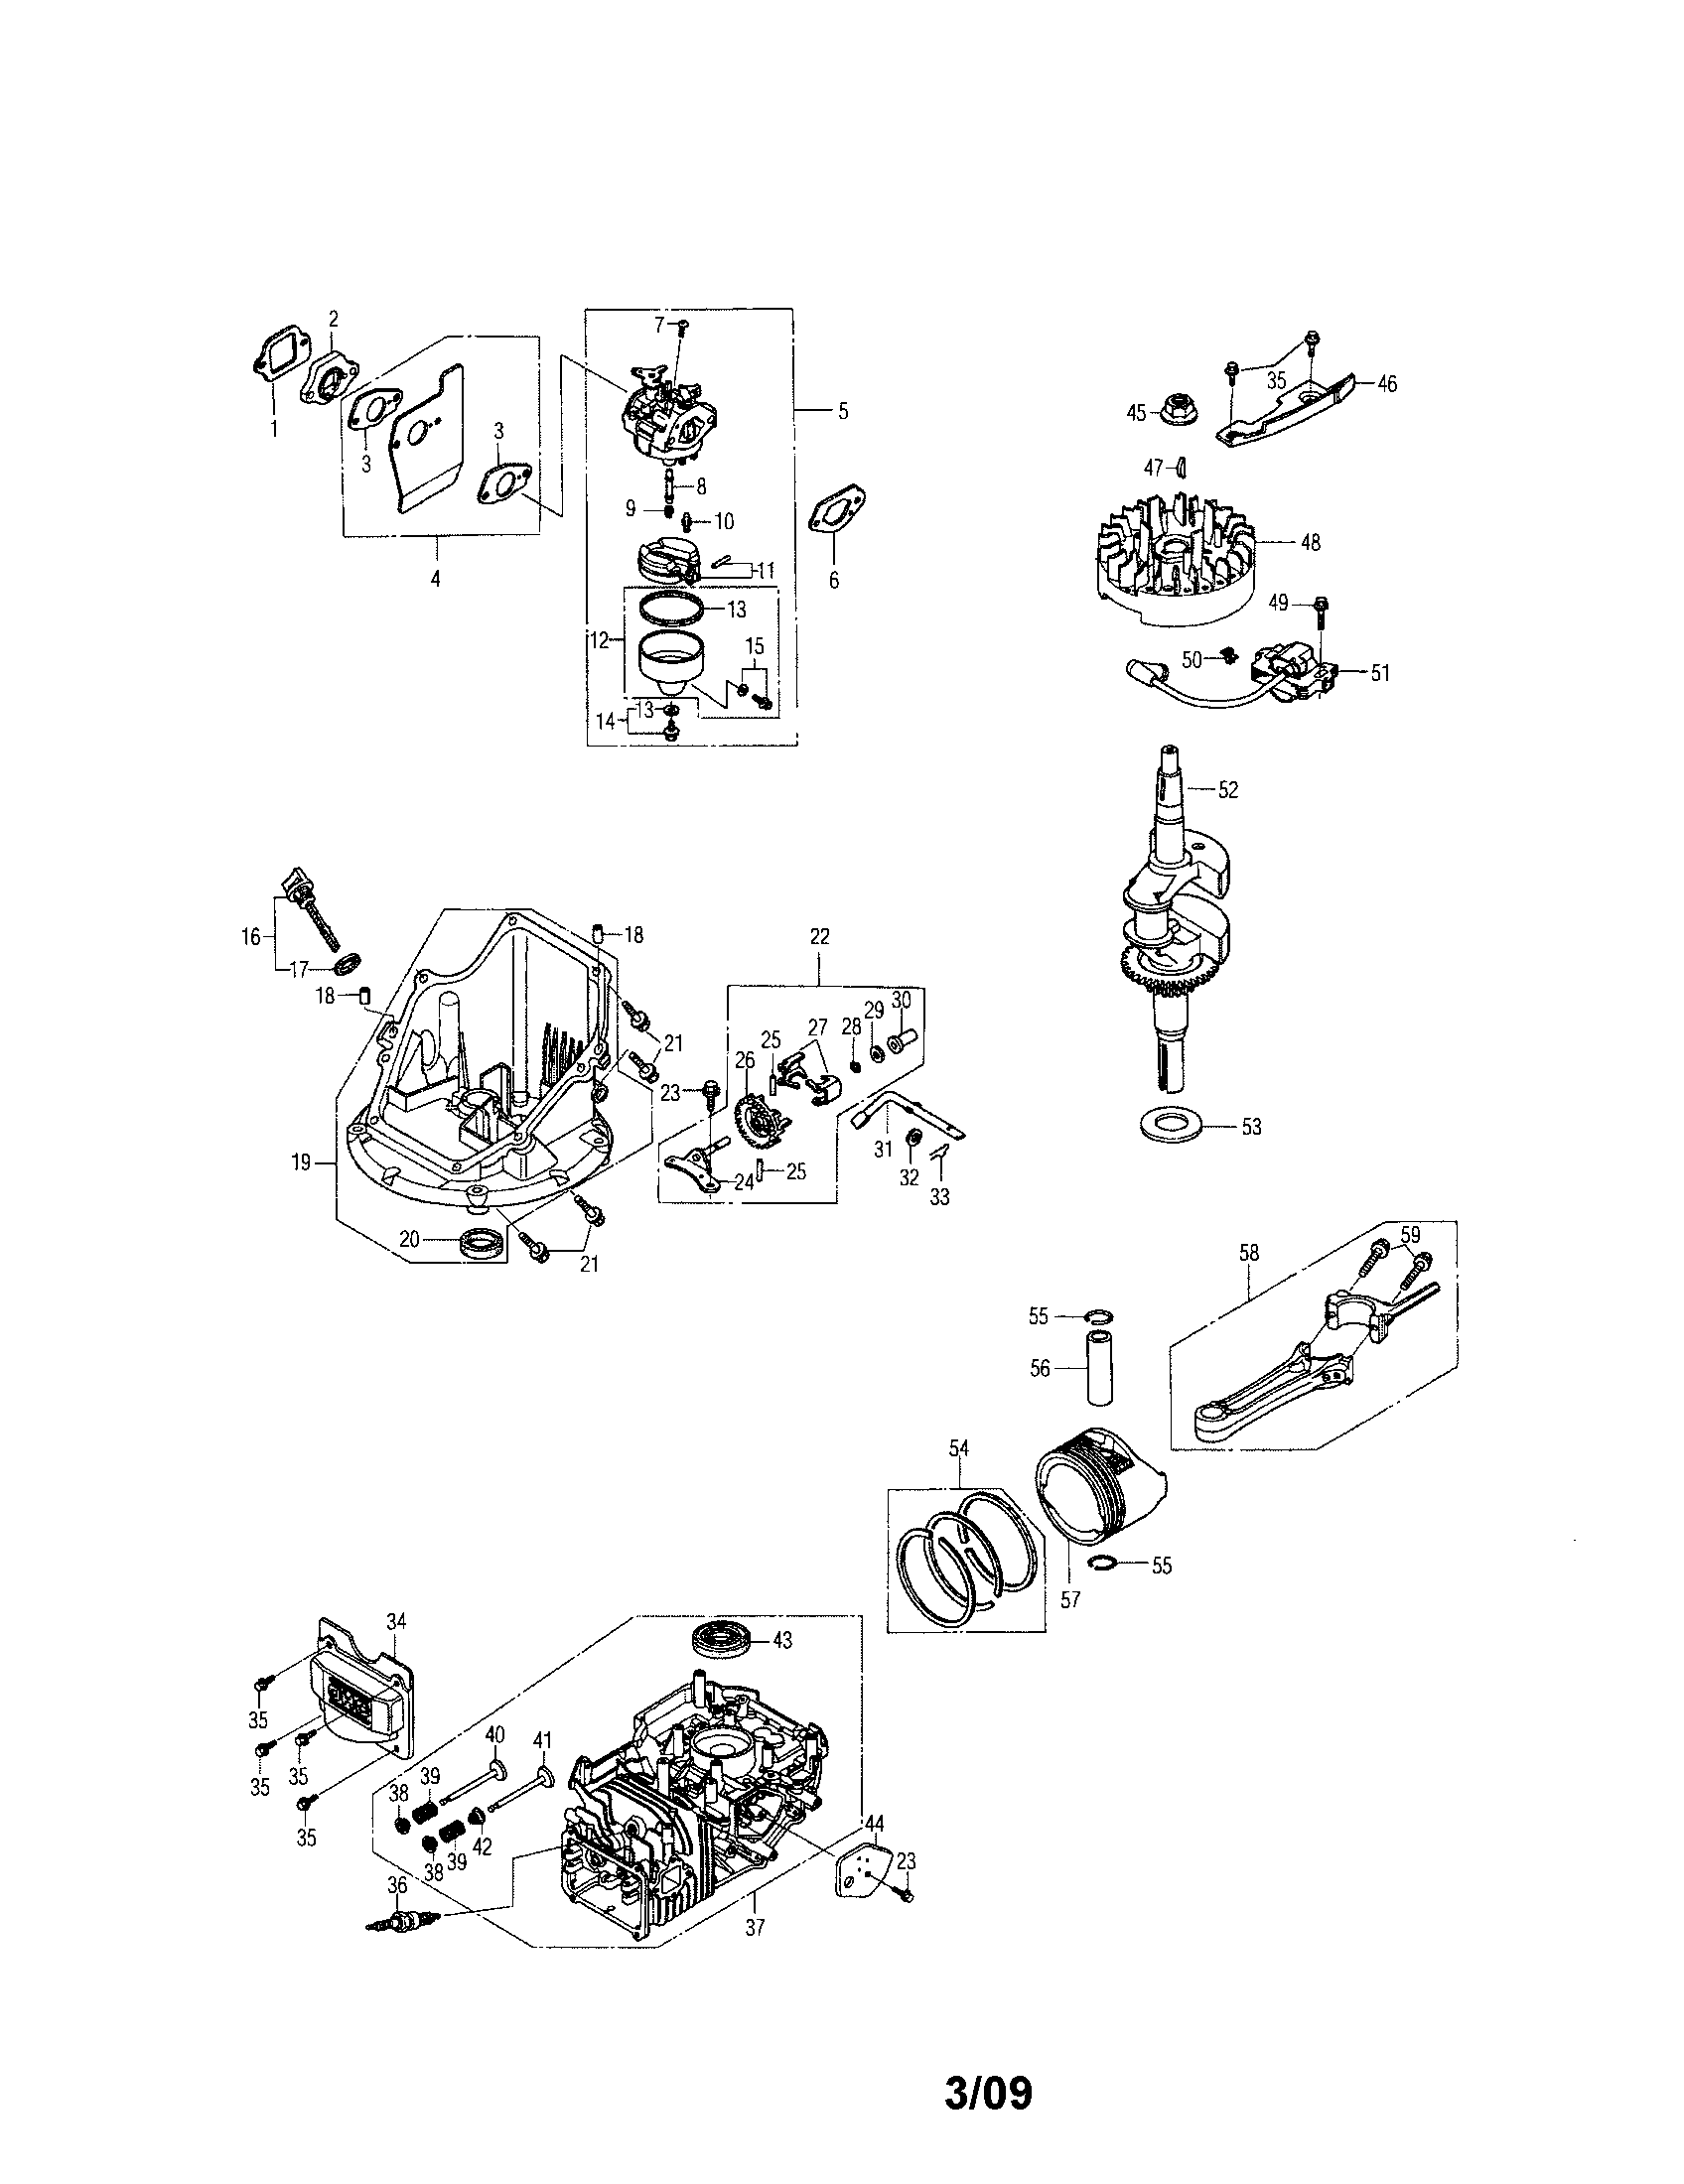 hight resolution of honda engine gcv160 parts diagram wiring diagram perfomancehonda engine gcv160 carburetor diagram wiring diagram basic honda